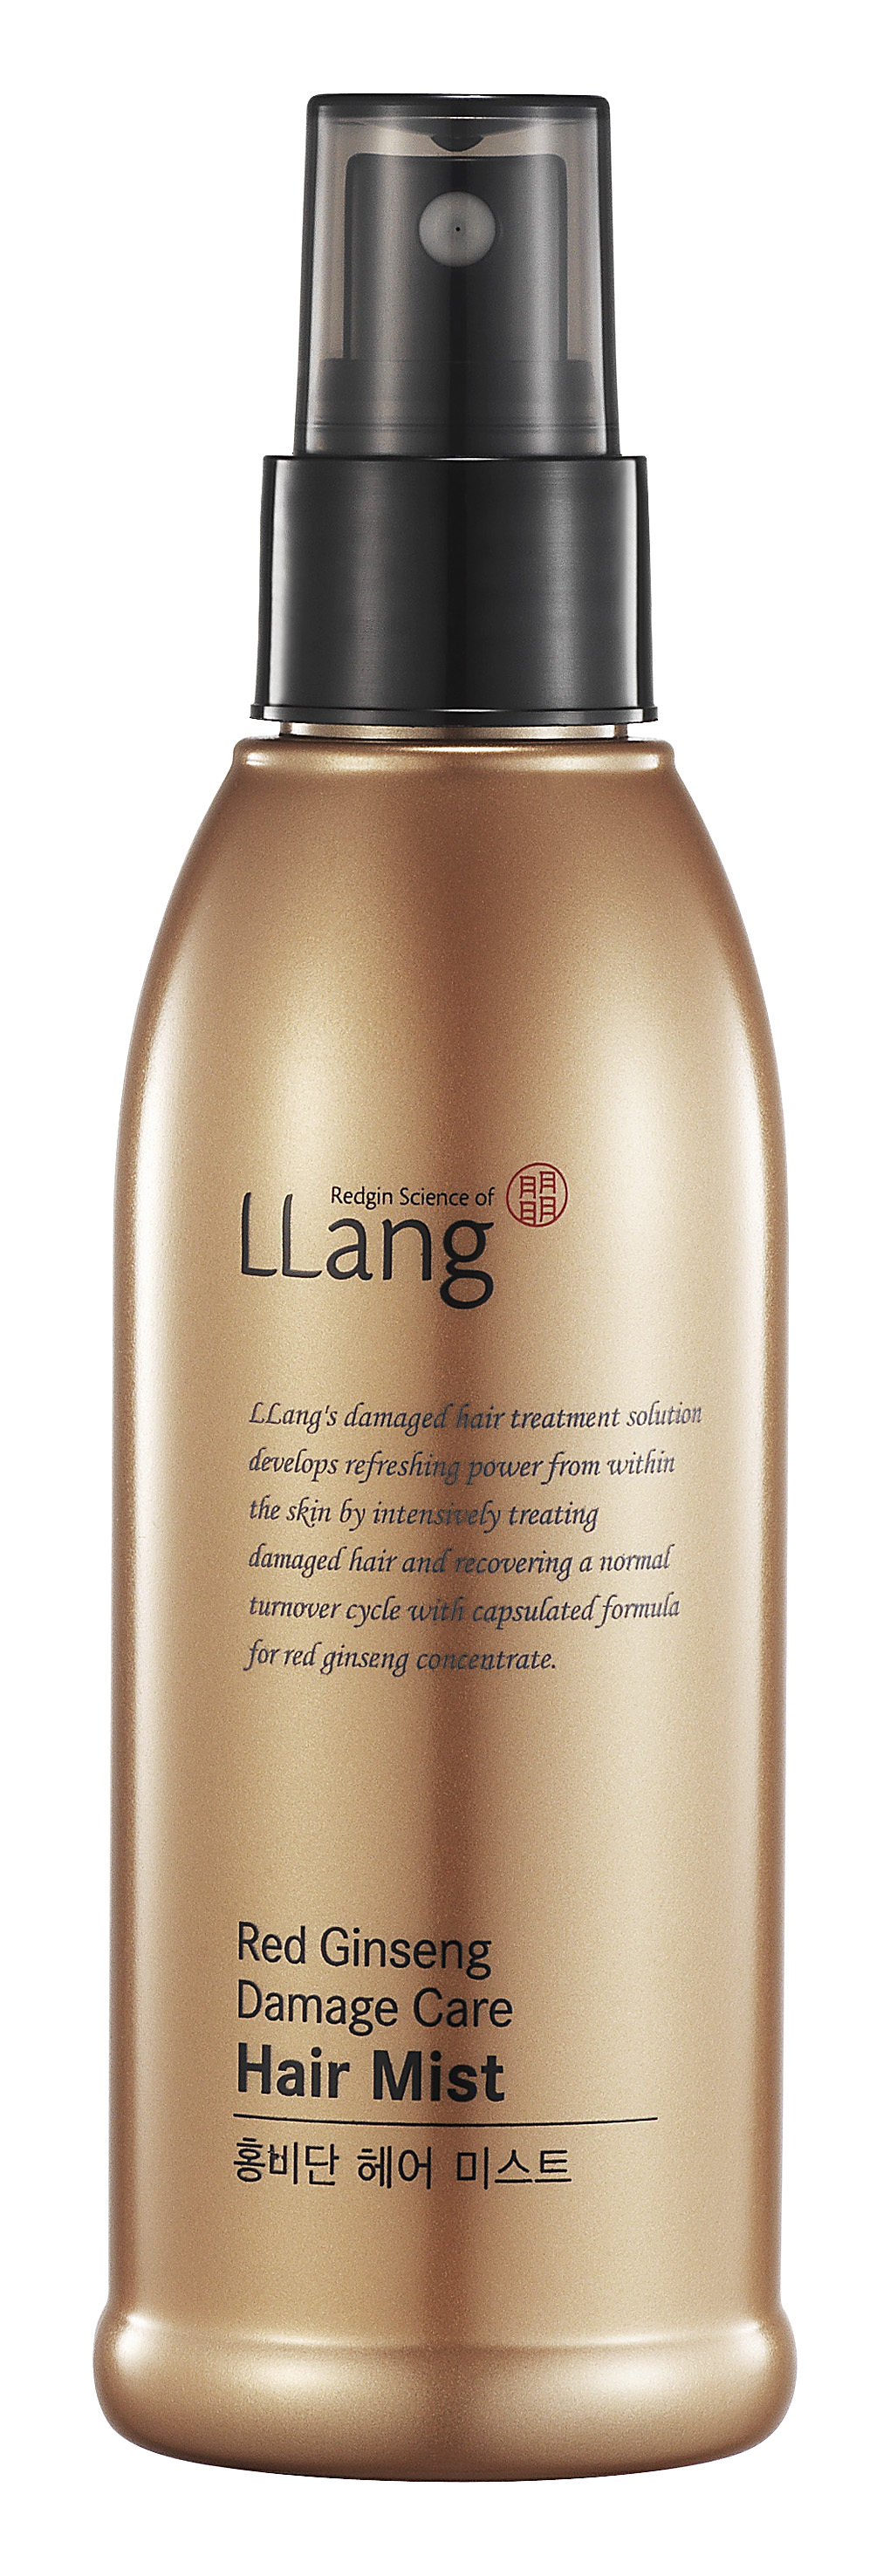 LLang Red ginseng damage care hair mist